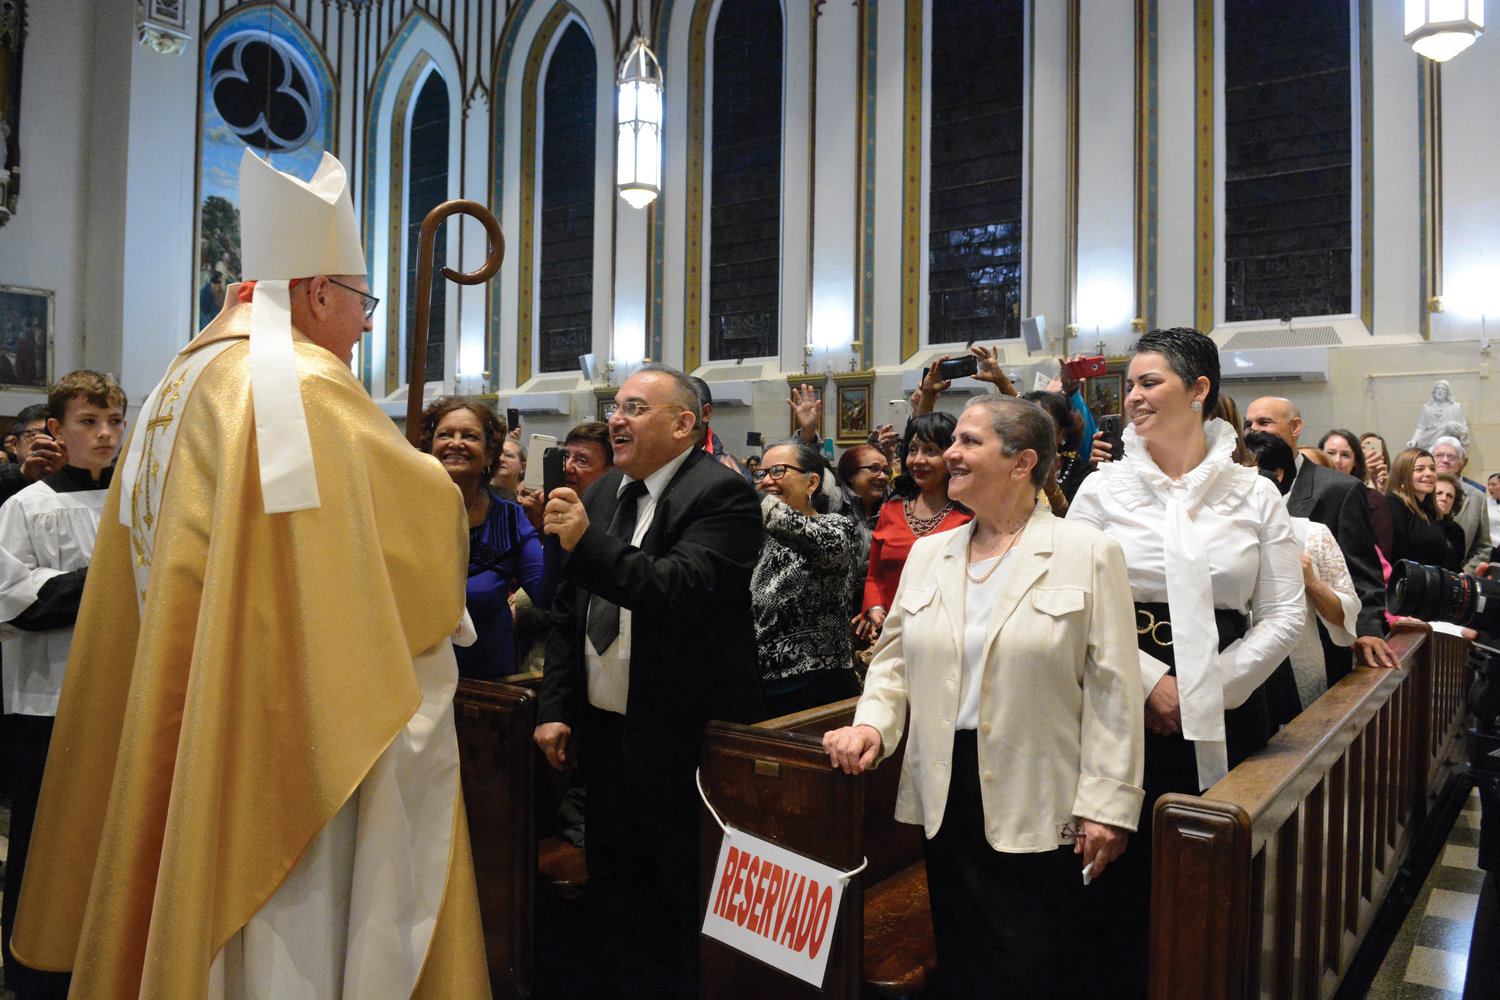 Cardinal Dolan greets parishioners Nov. 2 before celebrating the 150th anniversary Mass at St. Elizabeth Church in the Washington Heights section of Manhattan.